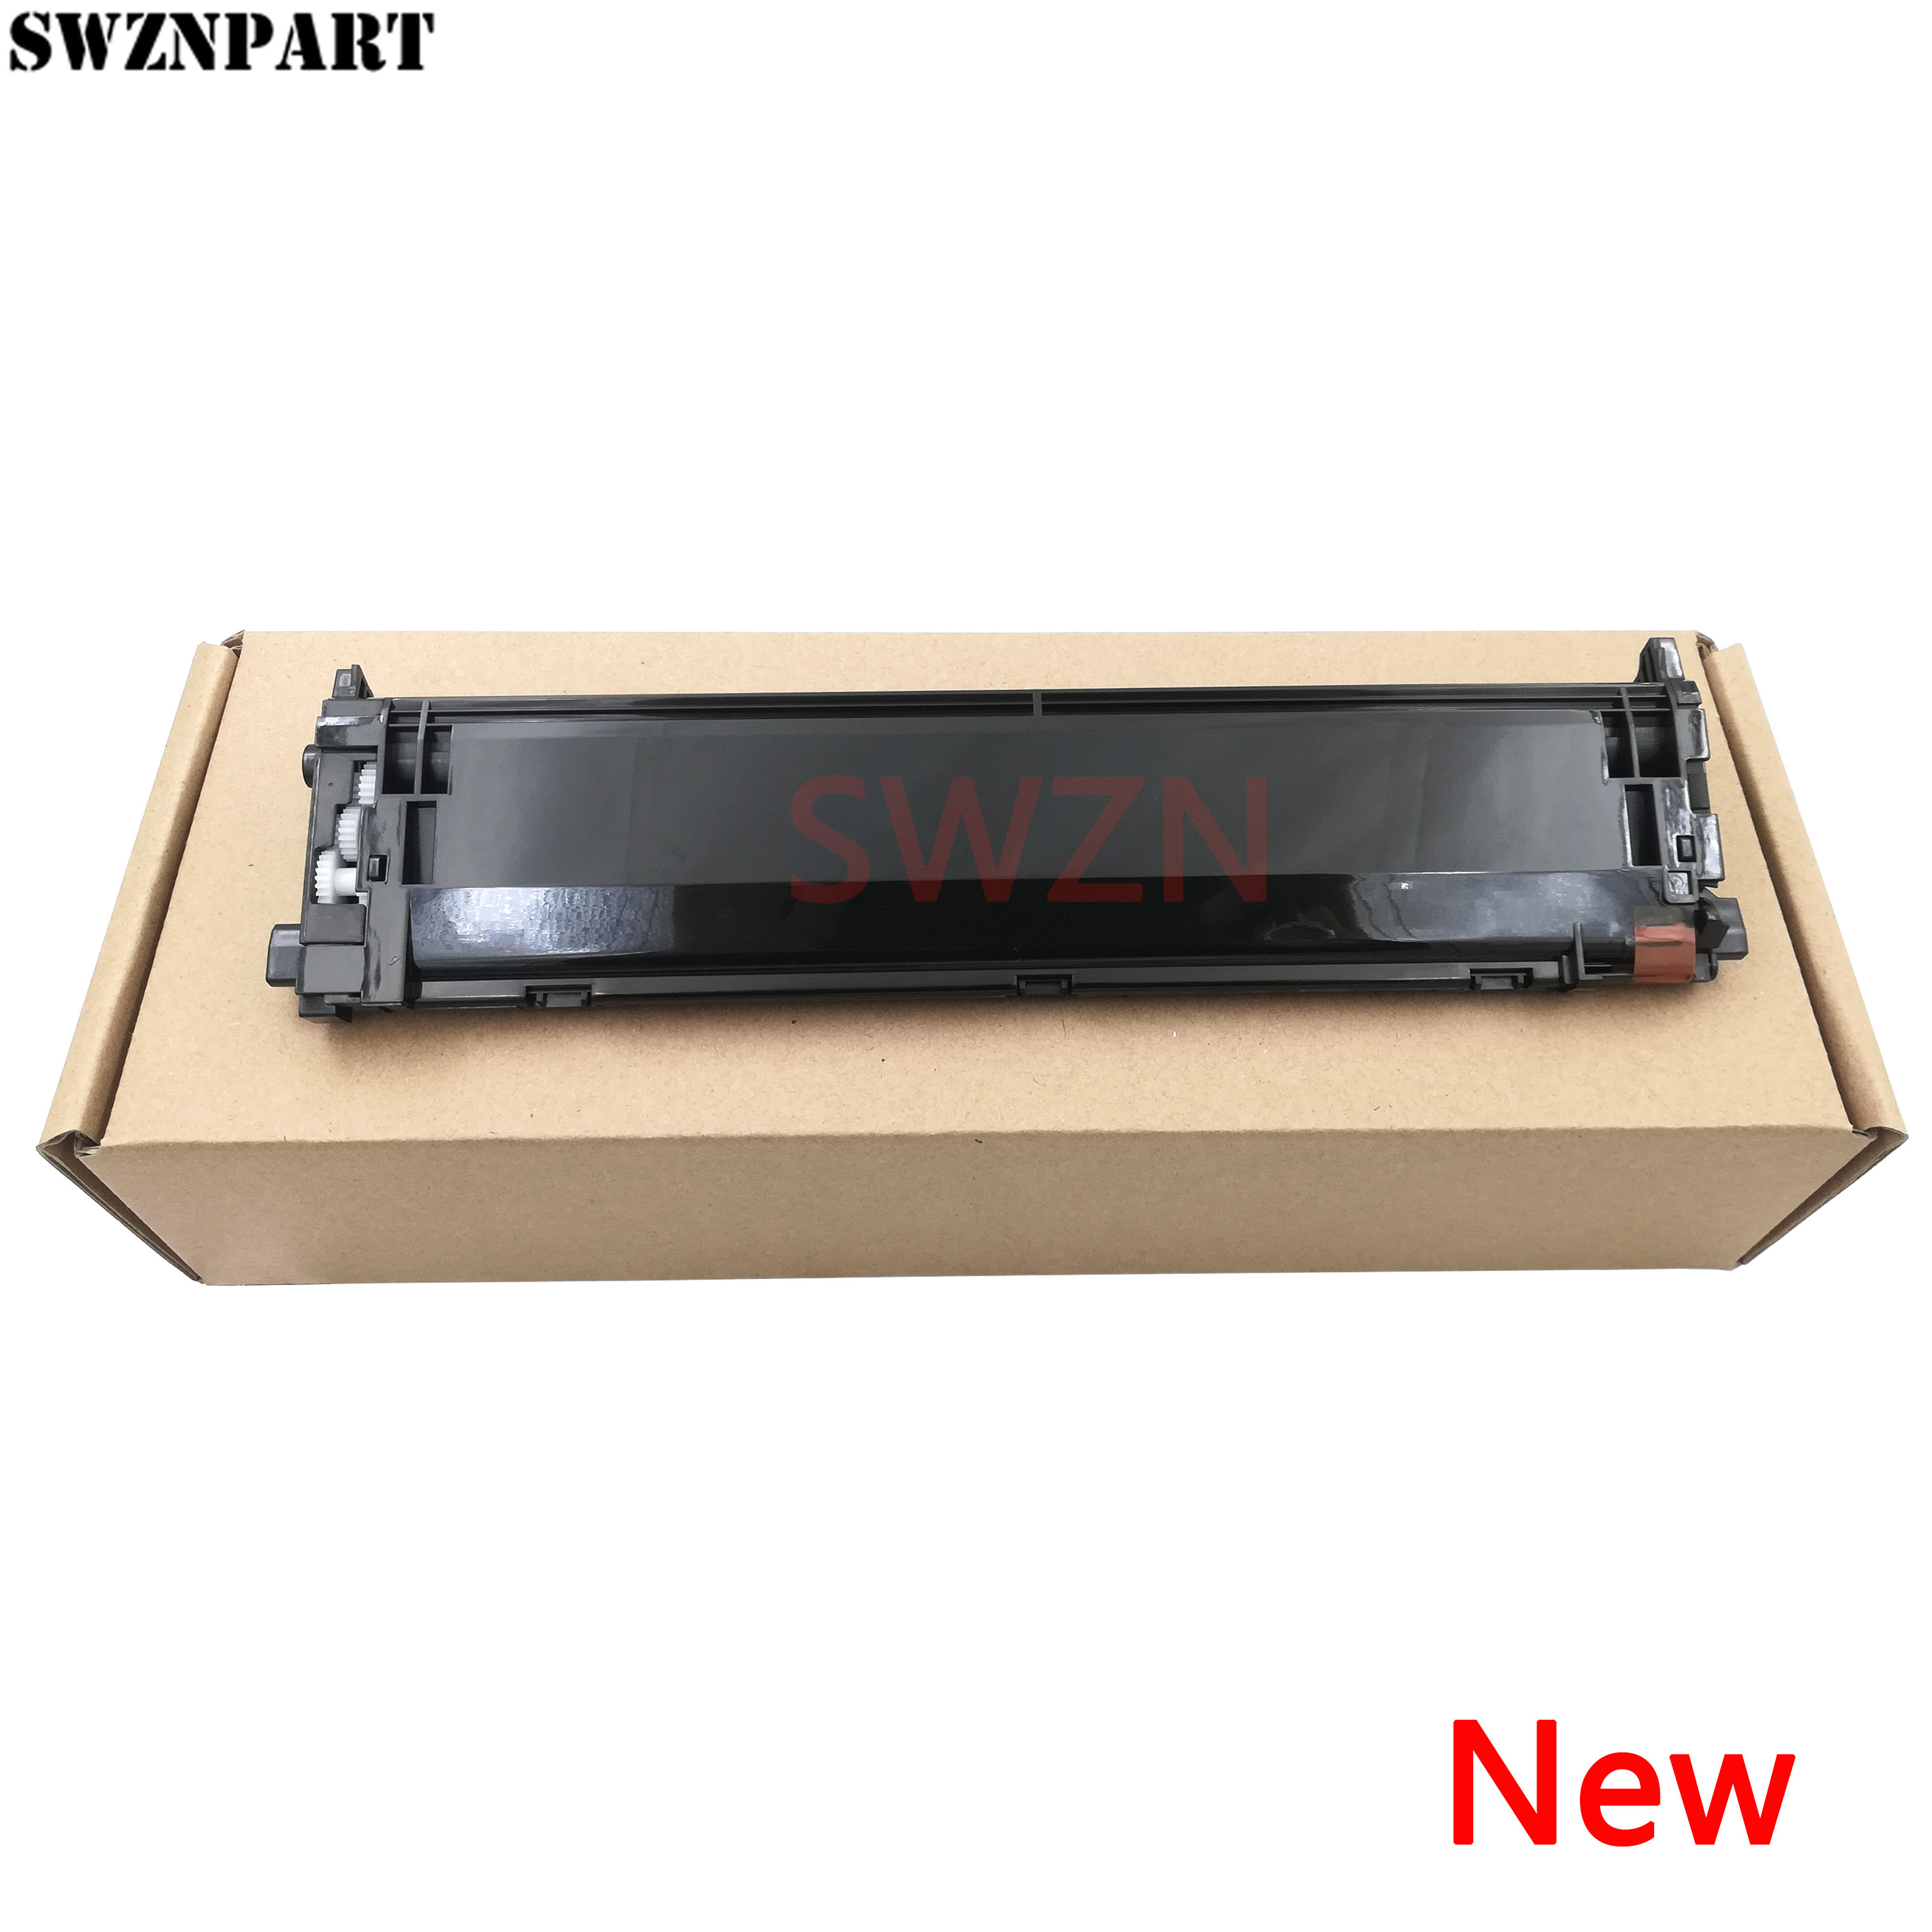 New Transfer Belt Cleaning Blad for Colorlaserjet cp3525 cp4025 cp4525 M551 M575 CE249A CC468-67927